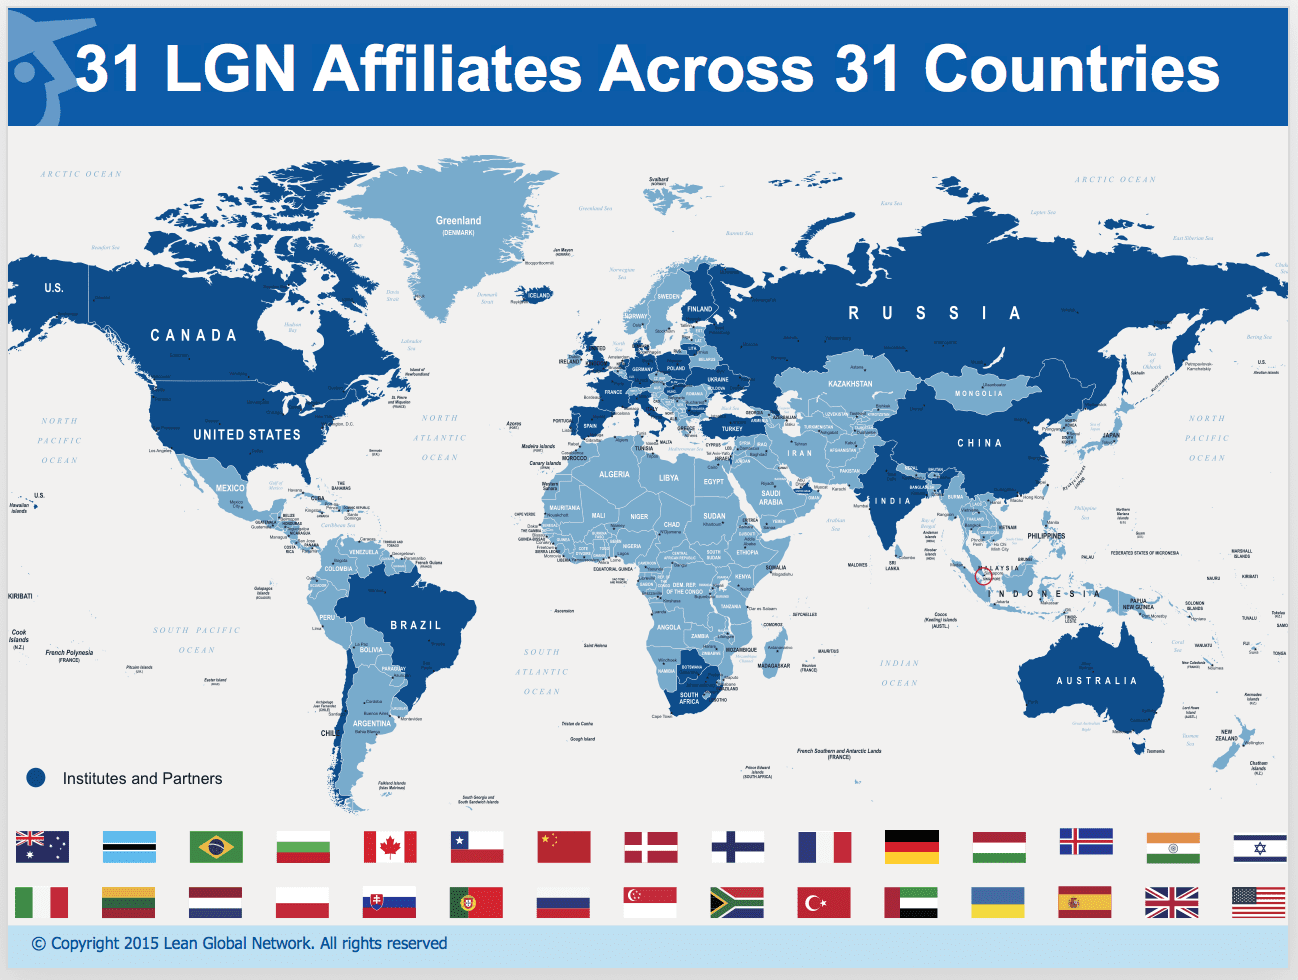 LGN has 31 partners and affiliates around the world